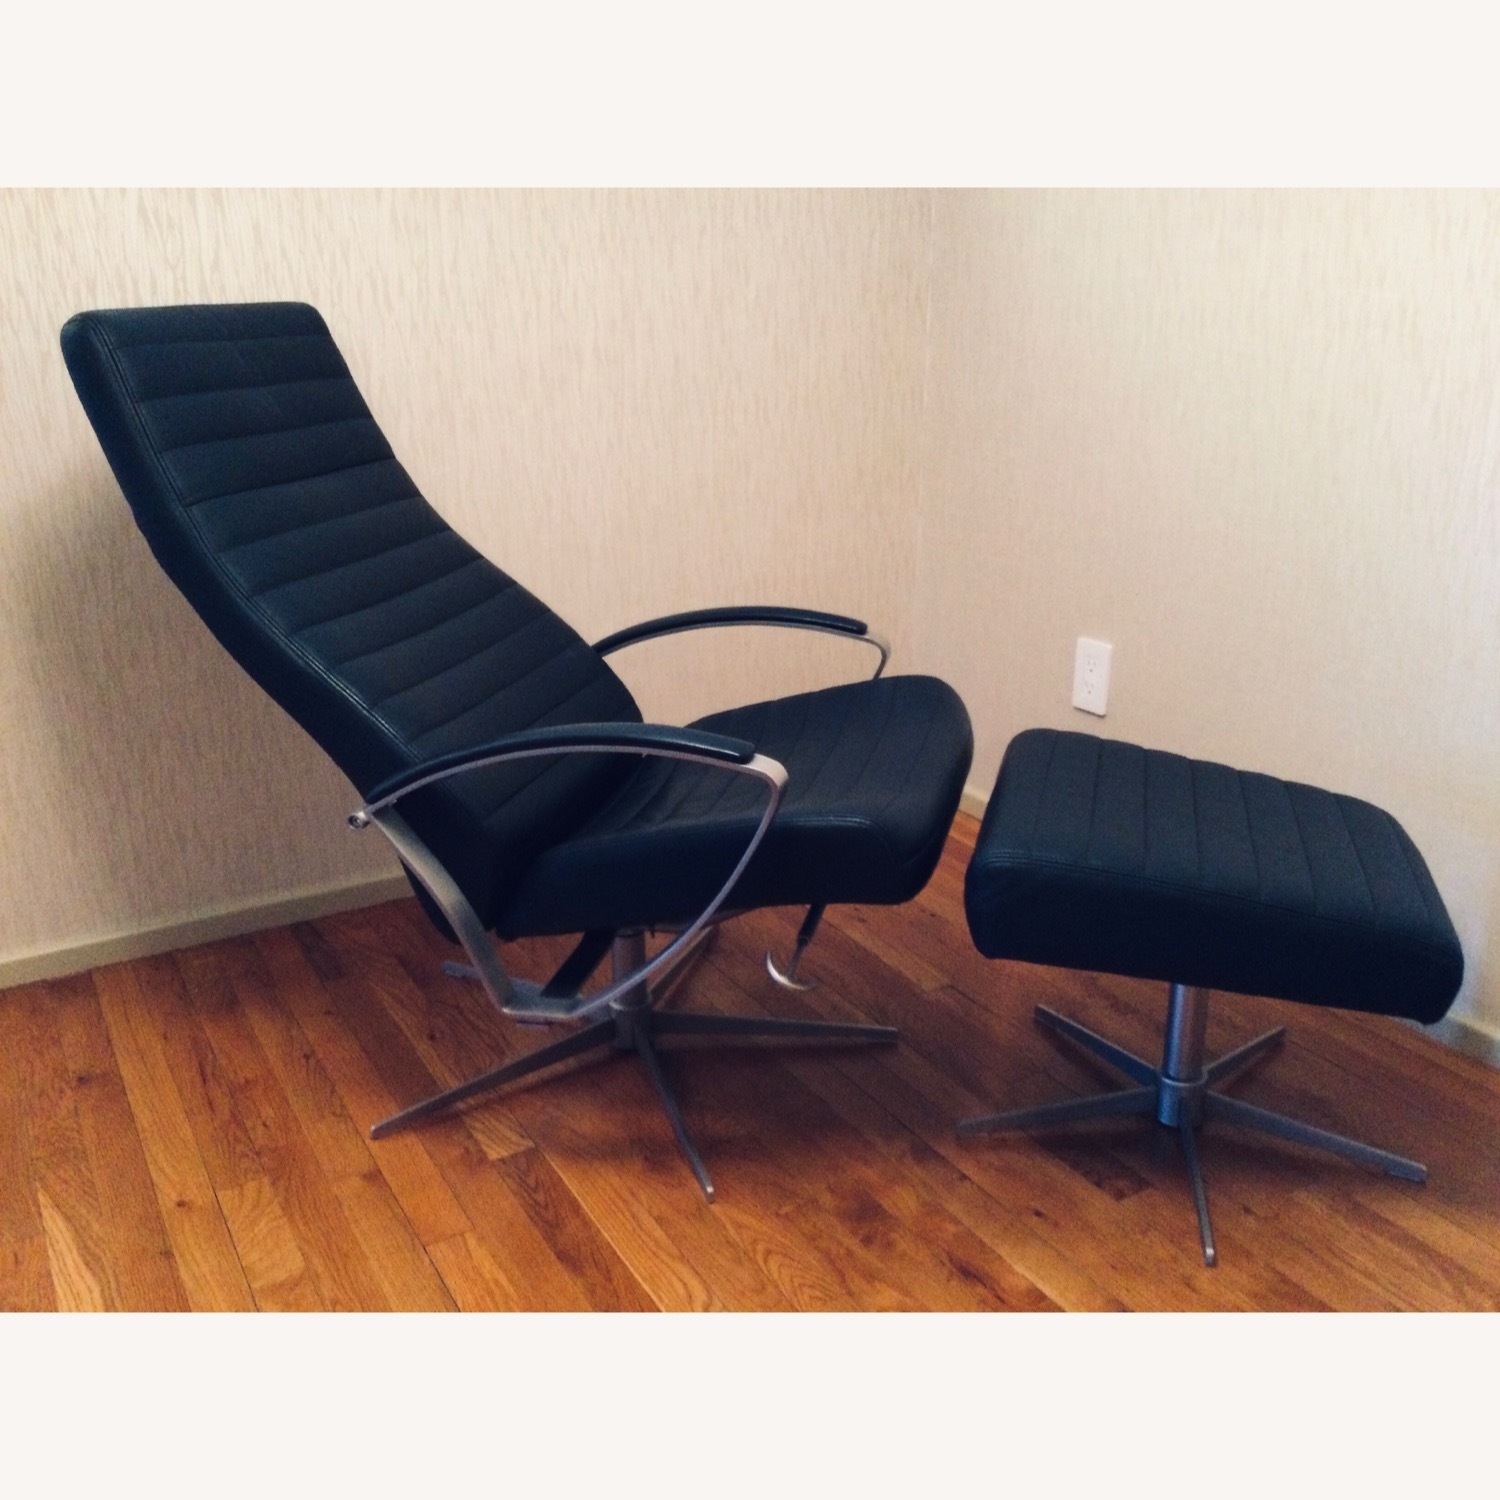 Black Recliner w/Ottoman by BoConcept - image-1